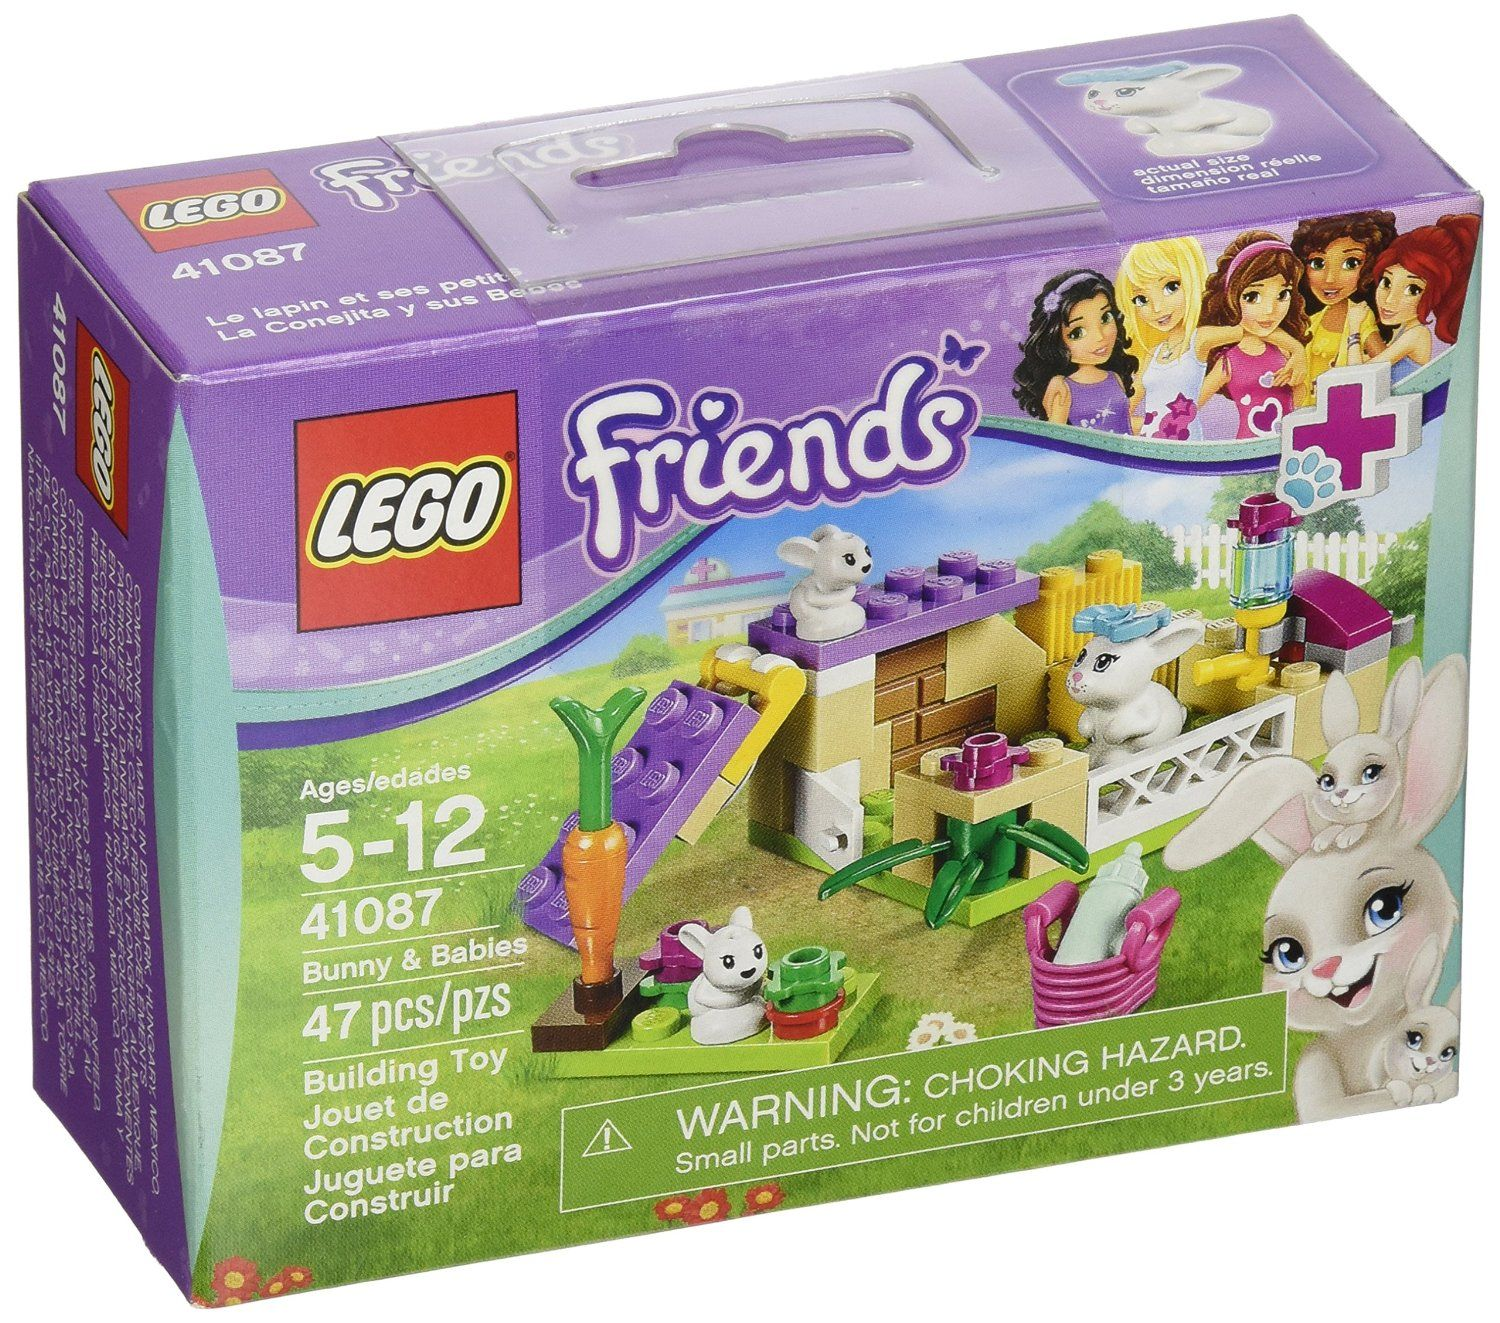 Amazon.com: LEGO Friends 41087 Bunny and Babies: Toys & Games ...